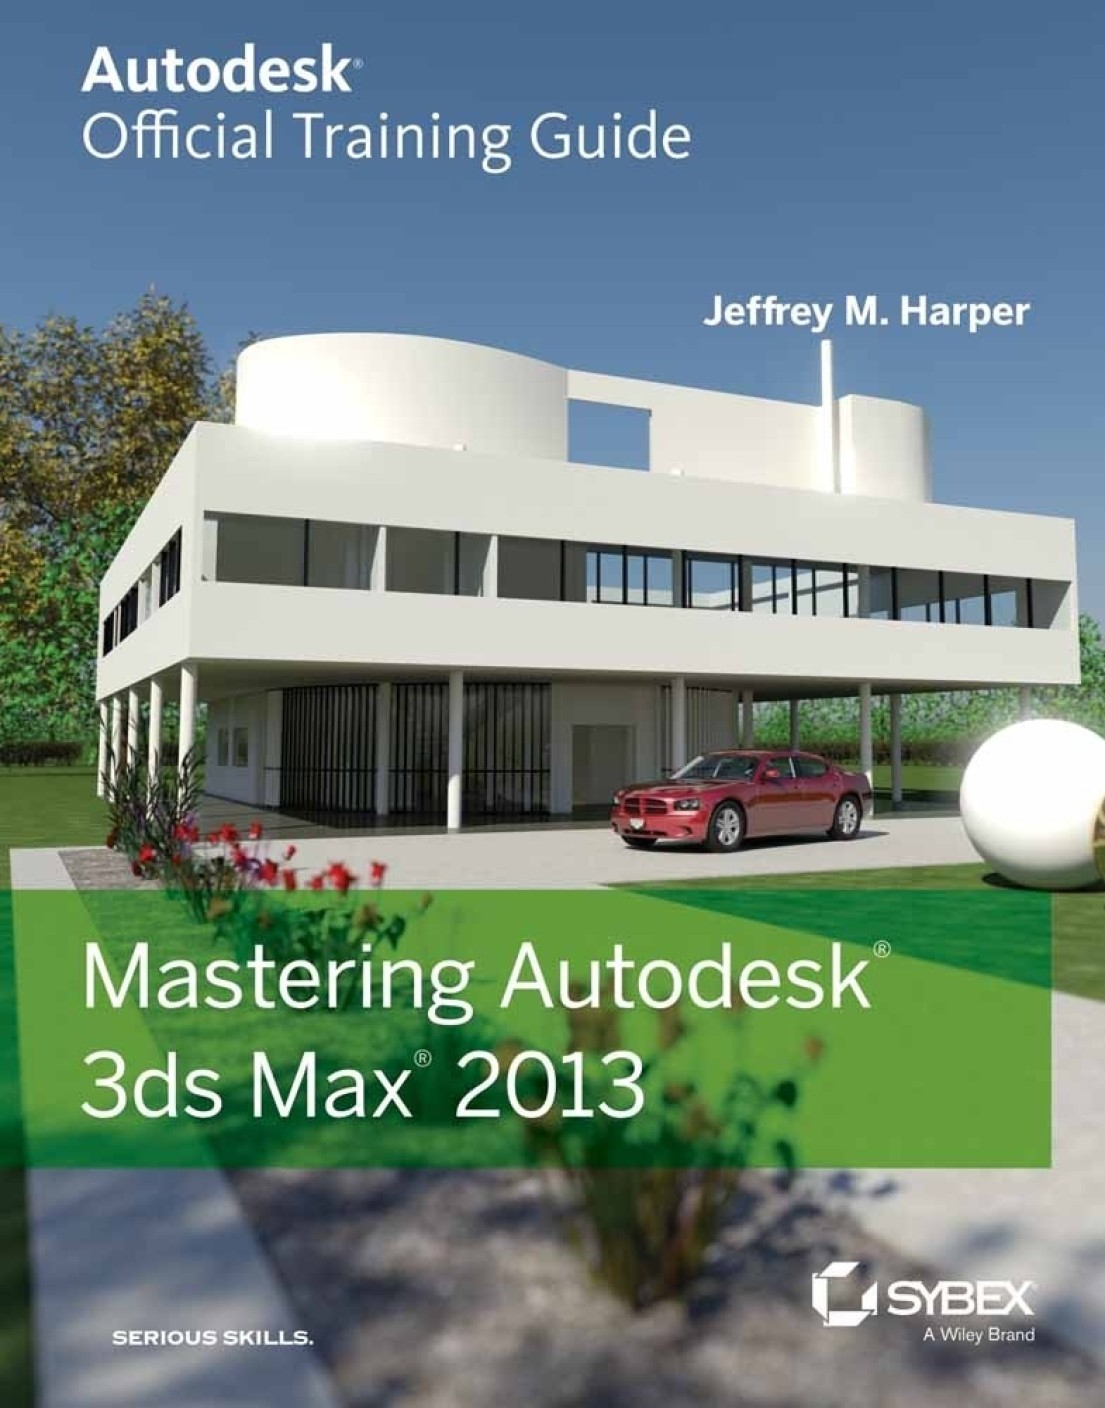 Mastering autodesk 3ds max design 2017 pdf mannflexatus for 3ds max design